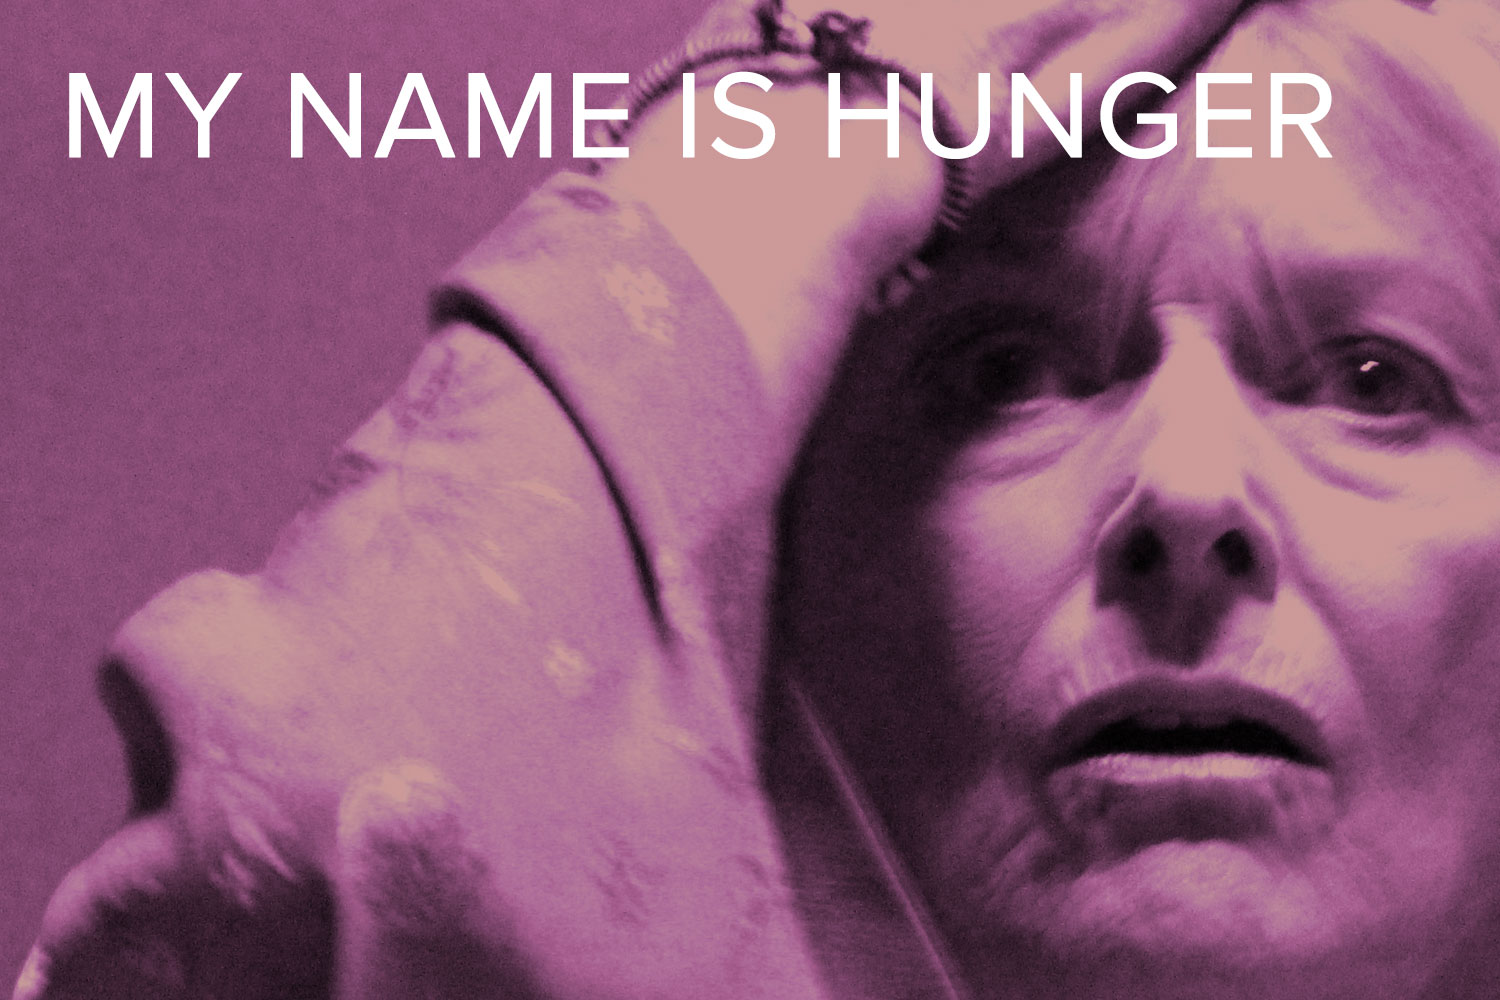 My Name is Hunger